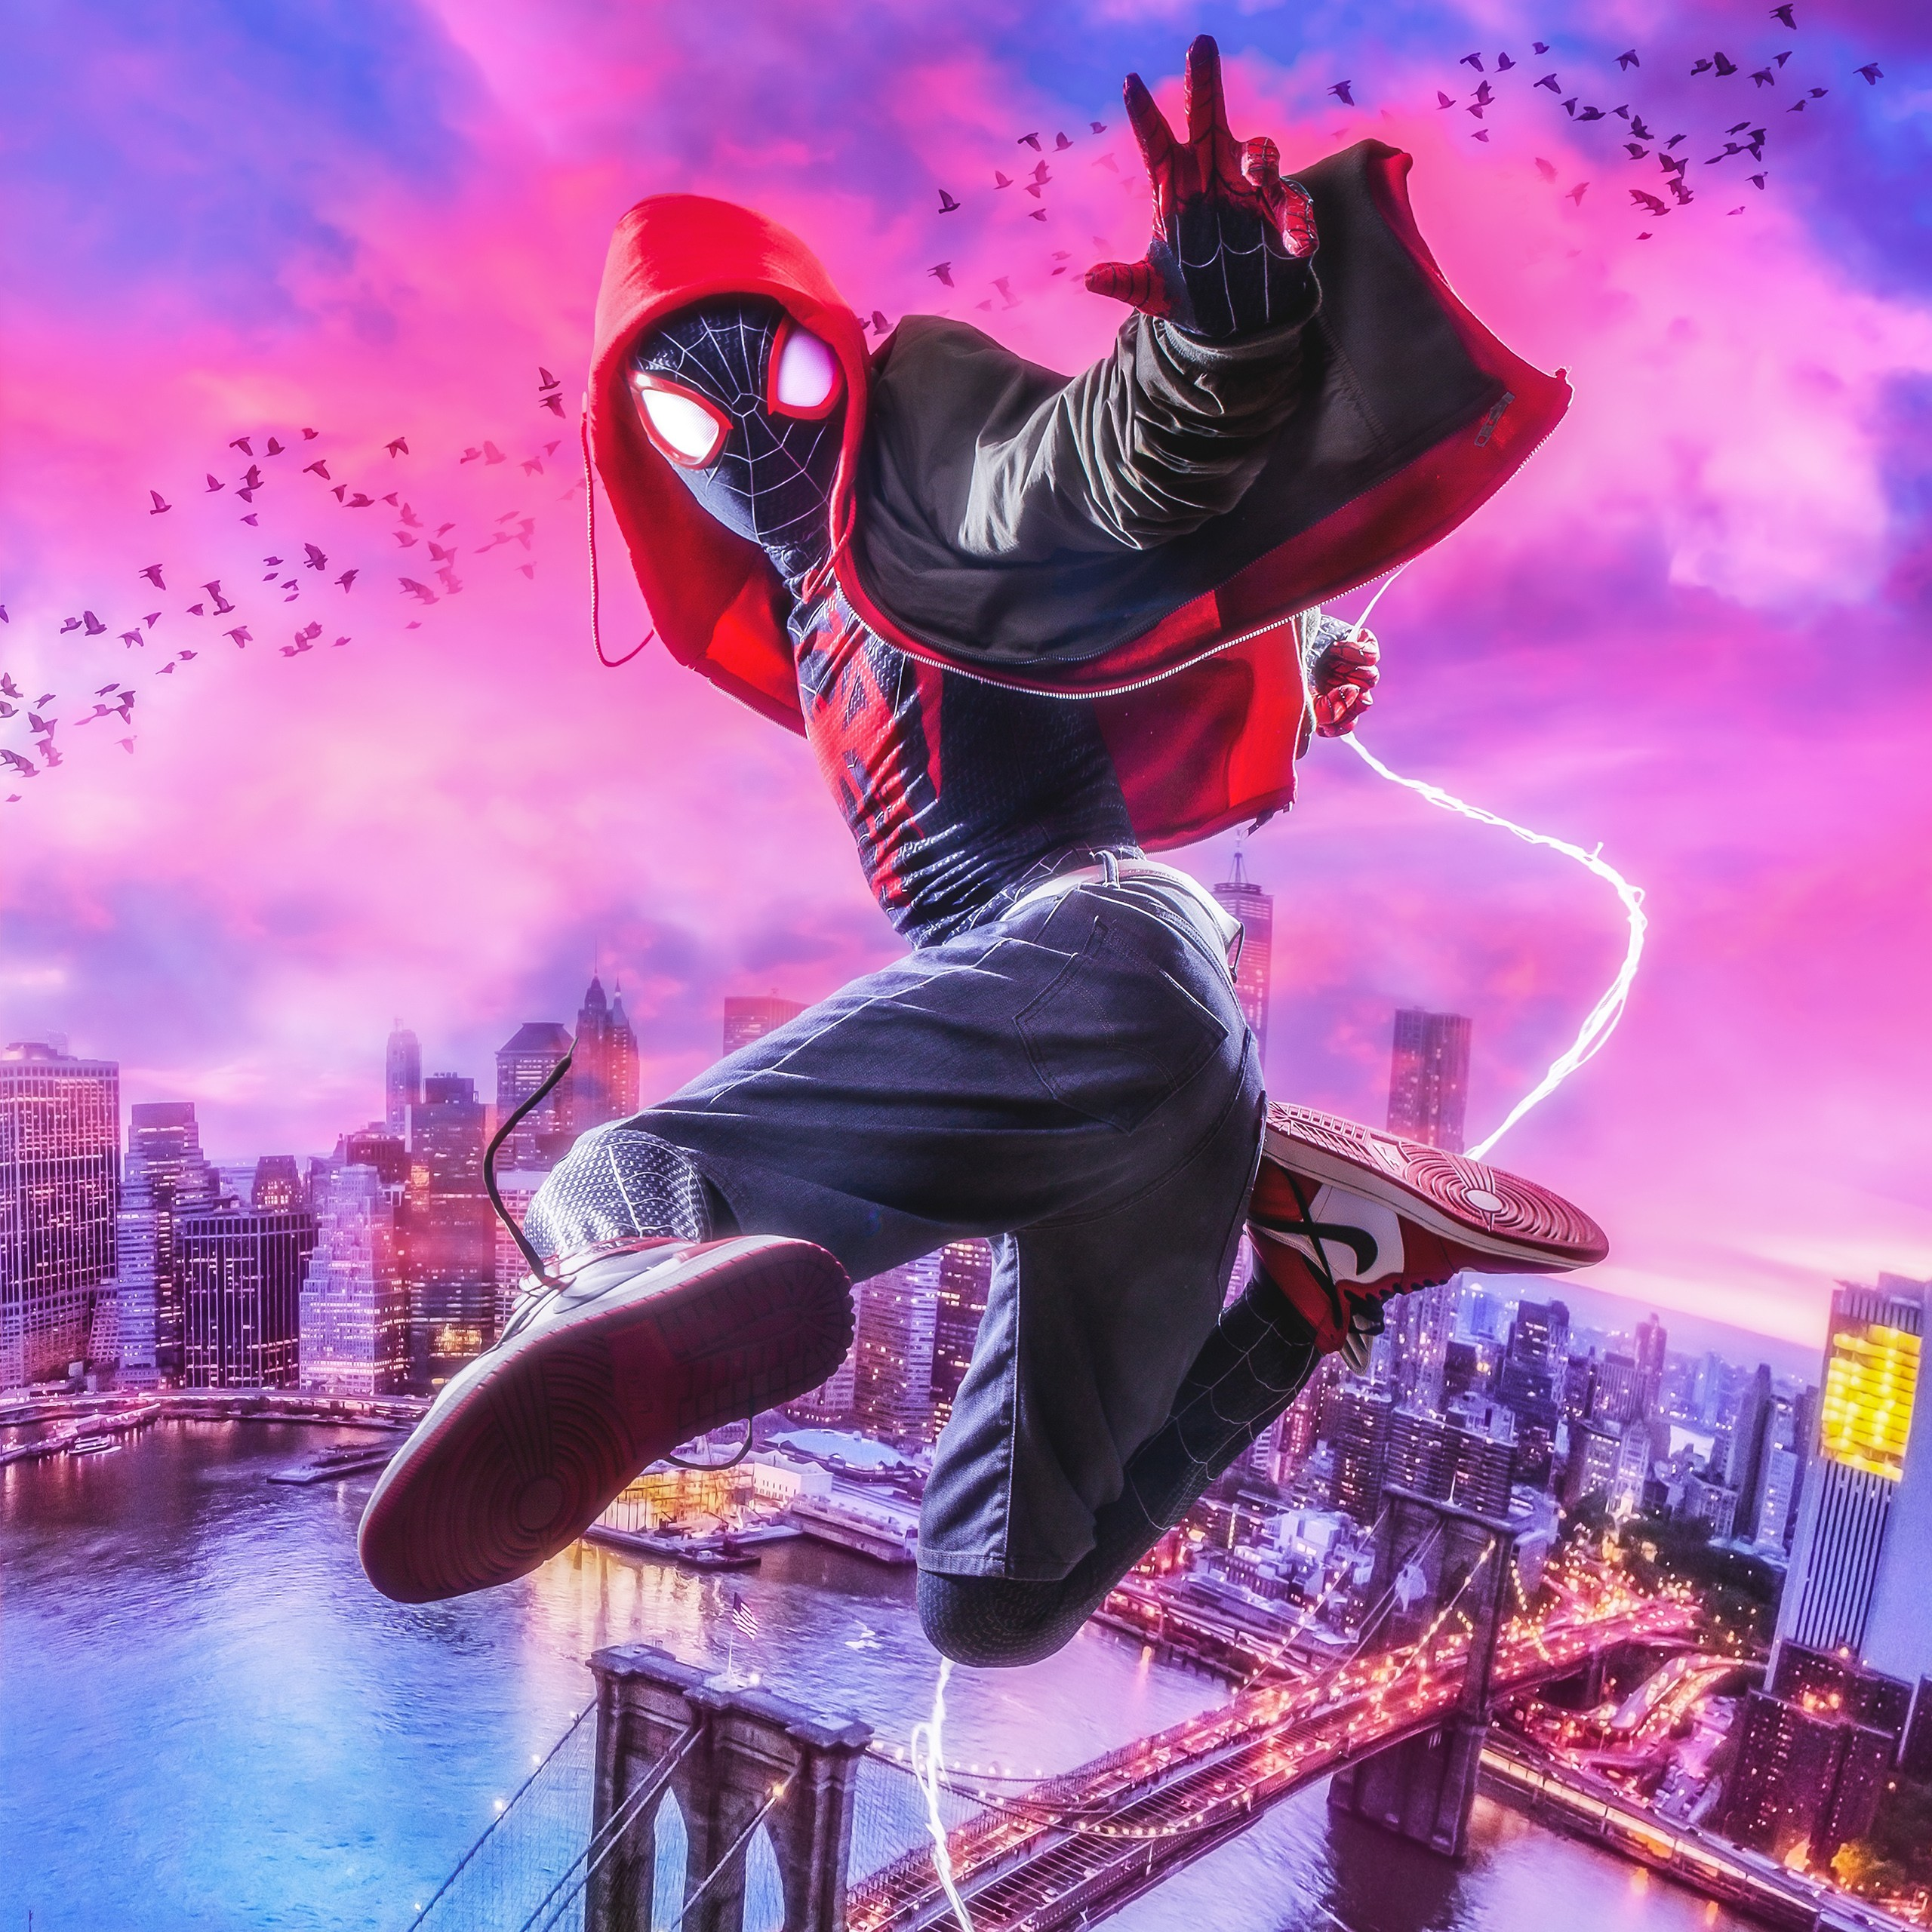 Spiderman Wallpaper Hd Android Spider Man Into The Spider Verse 4k Wallpapers Hd